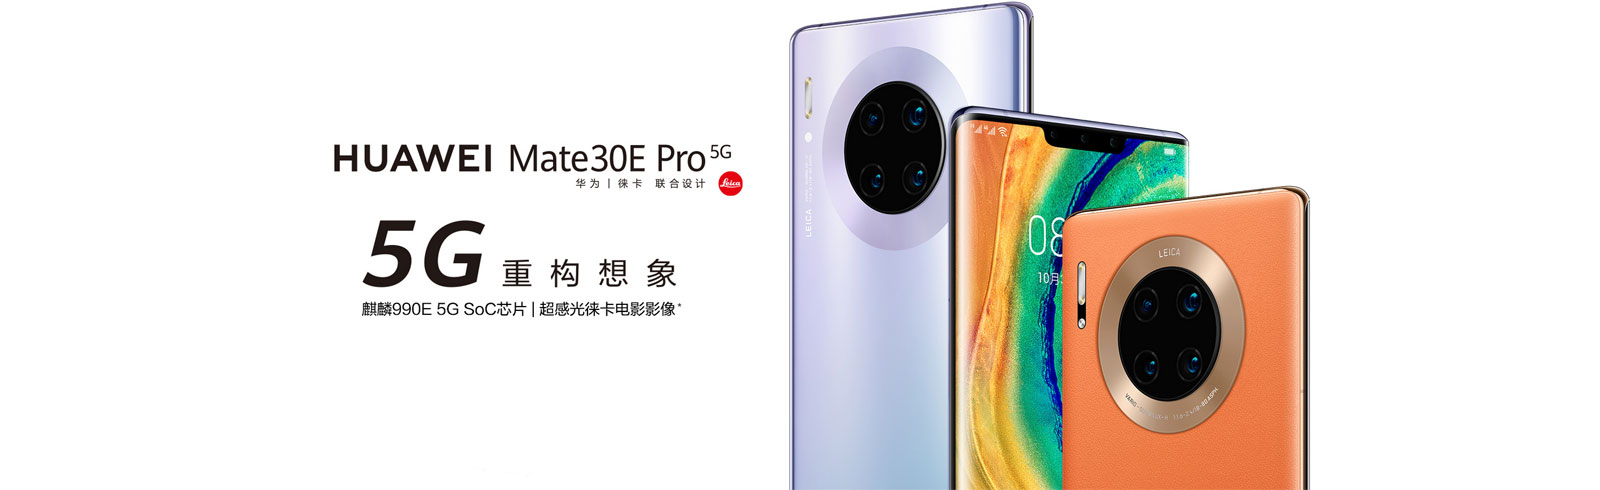 Huawei Mate 30E Pro 5G - specifications and prices